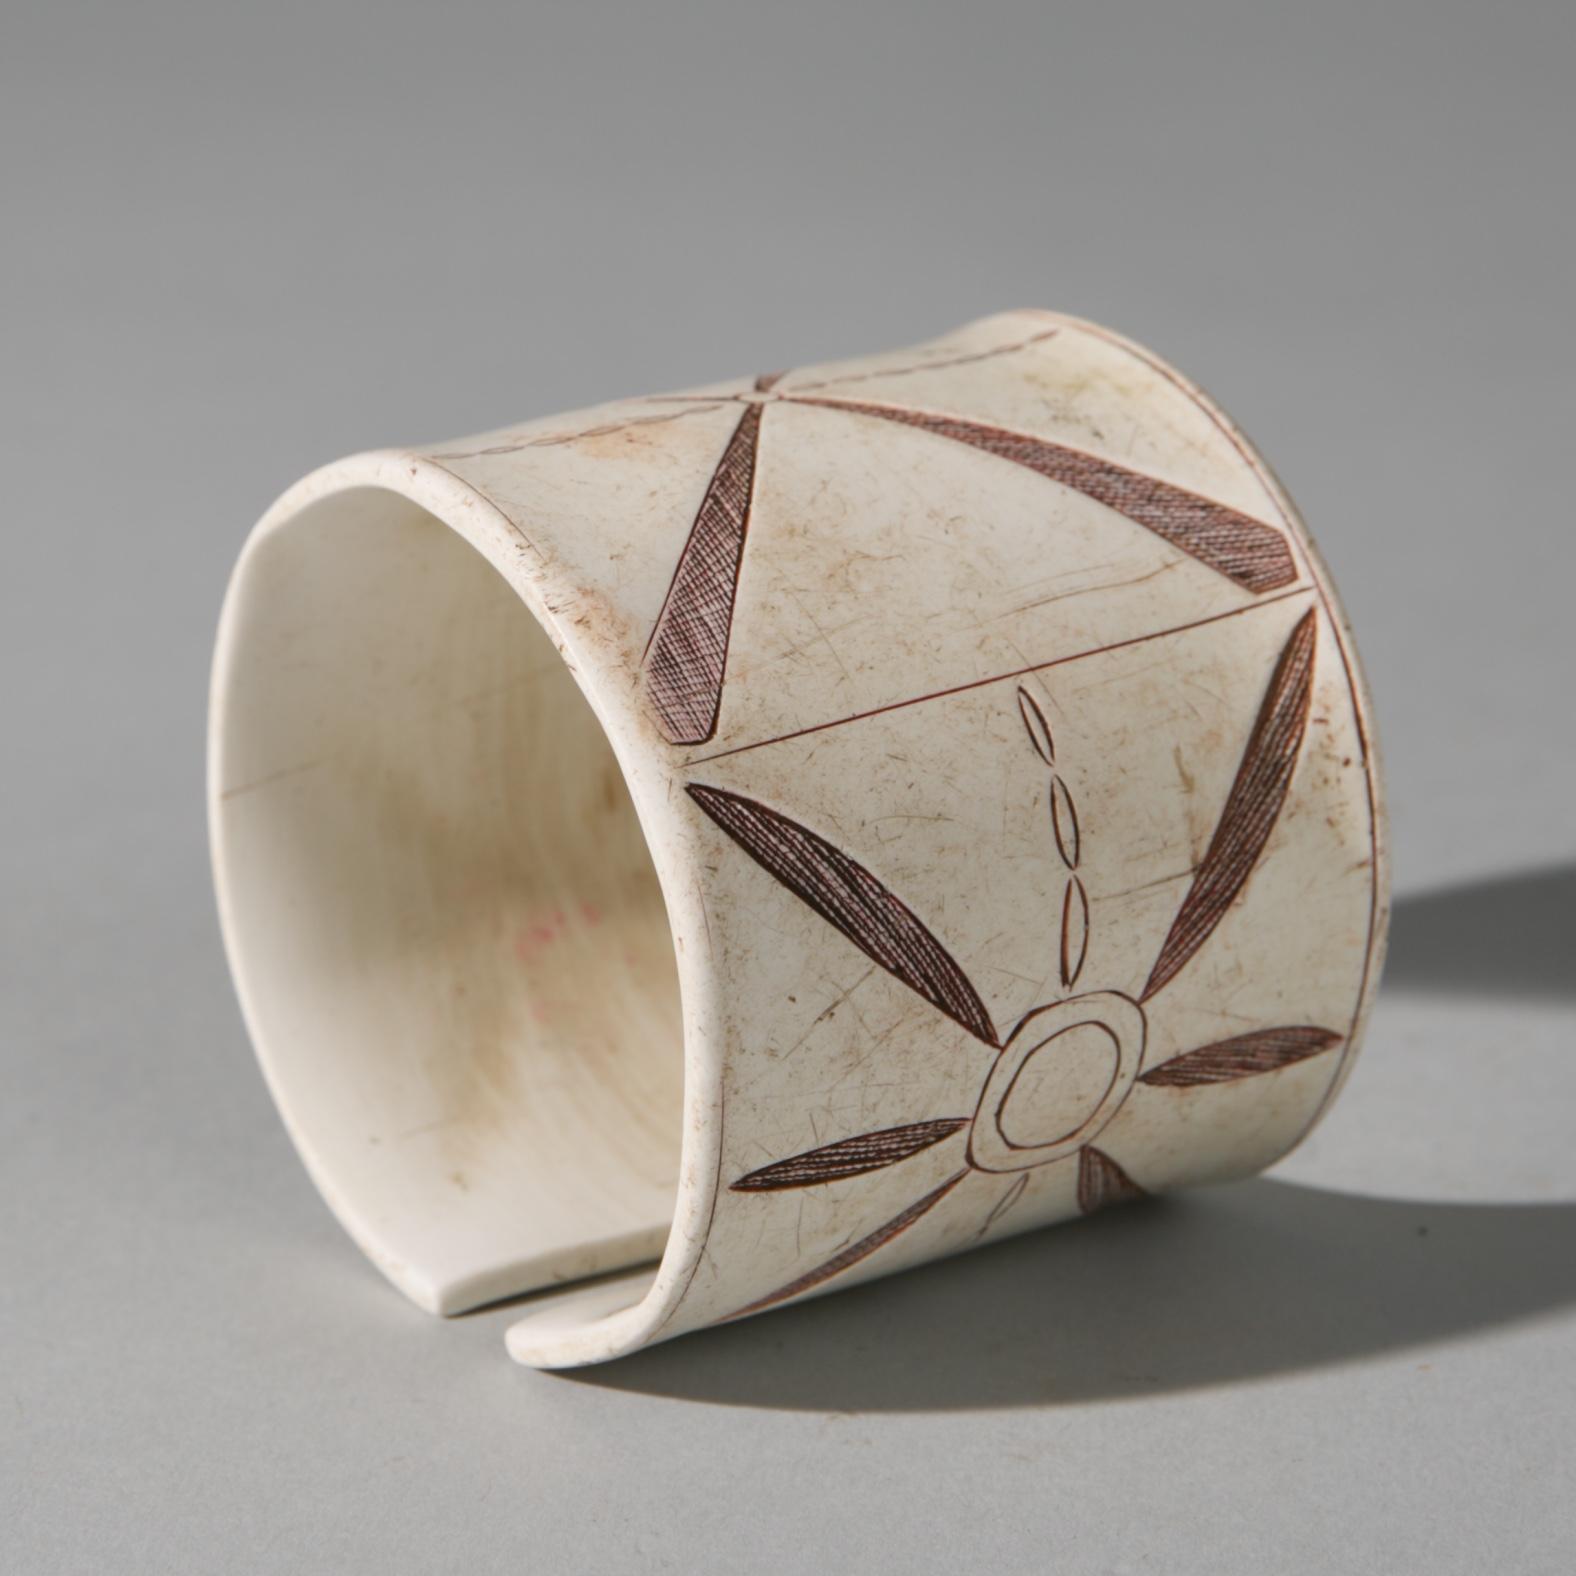 Sold YEARS-A SUBLIME HIMBA CUFF BRACELET, NAMIBIA, SW AFRICA ( No 3921 )